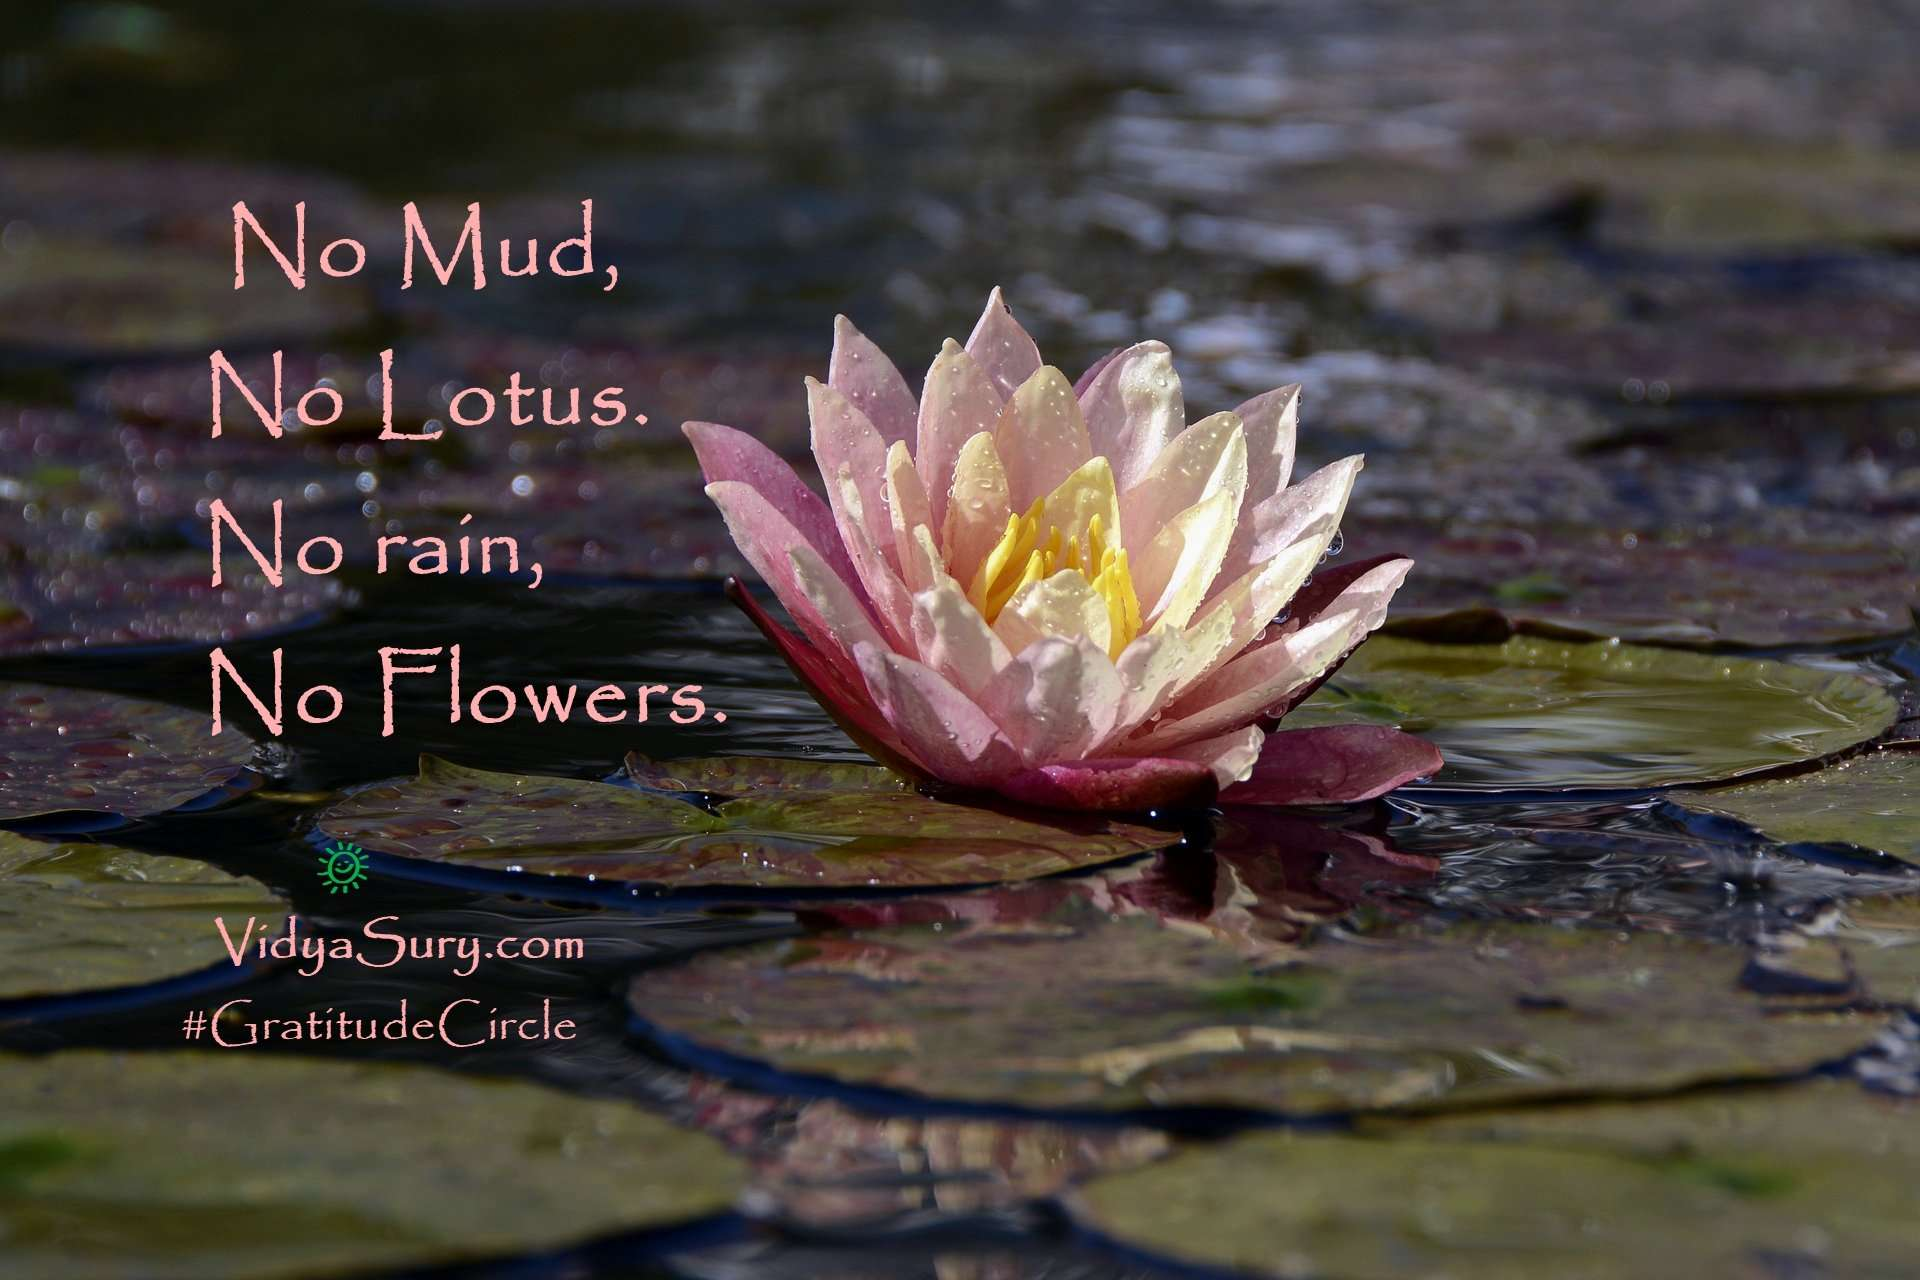 No mud, No lotus. No rain, No flowers. #GratitudeCircle #mindfulness